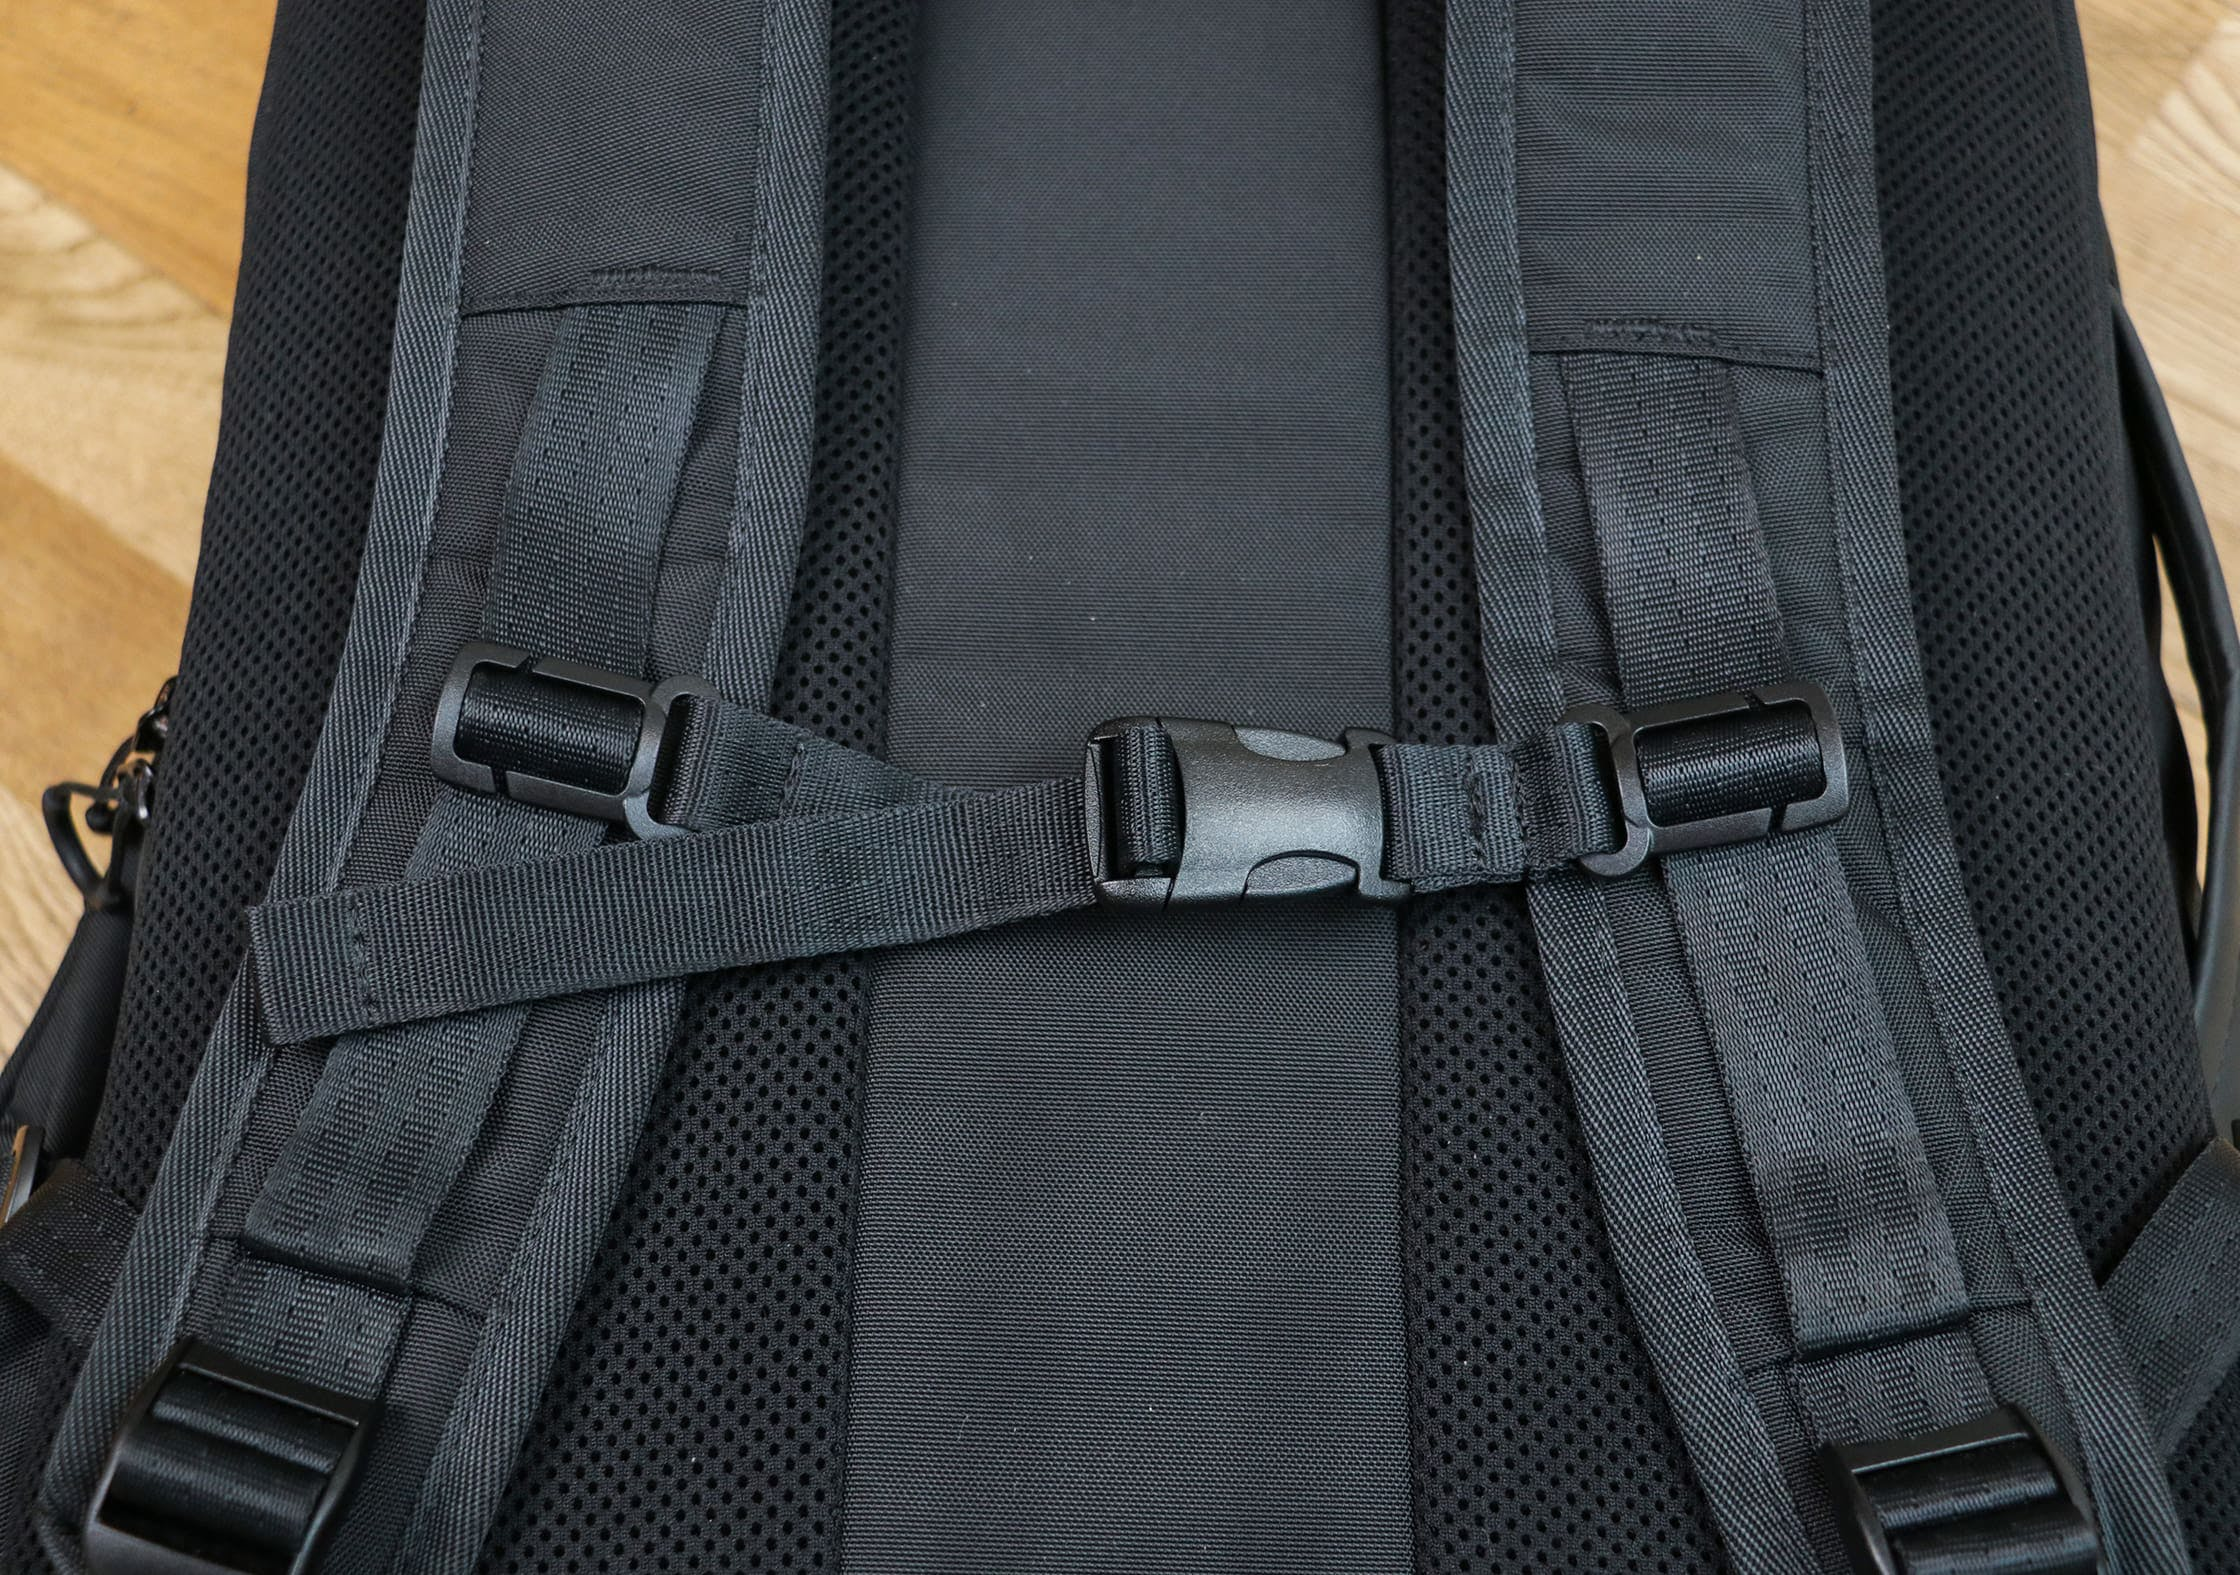 OPPOSETHIS Invisible Carry-On Adjustable And Removable YKK Sternum Strap